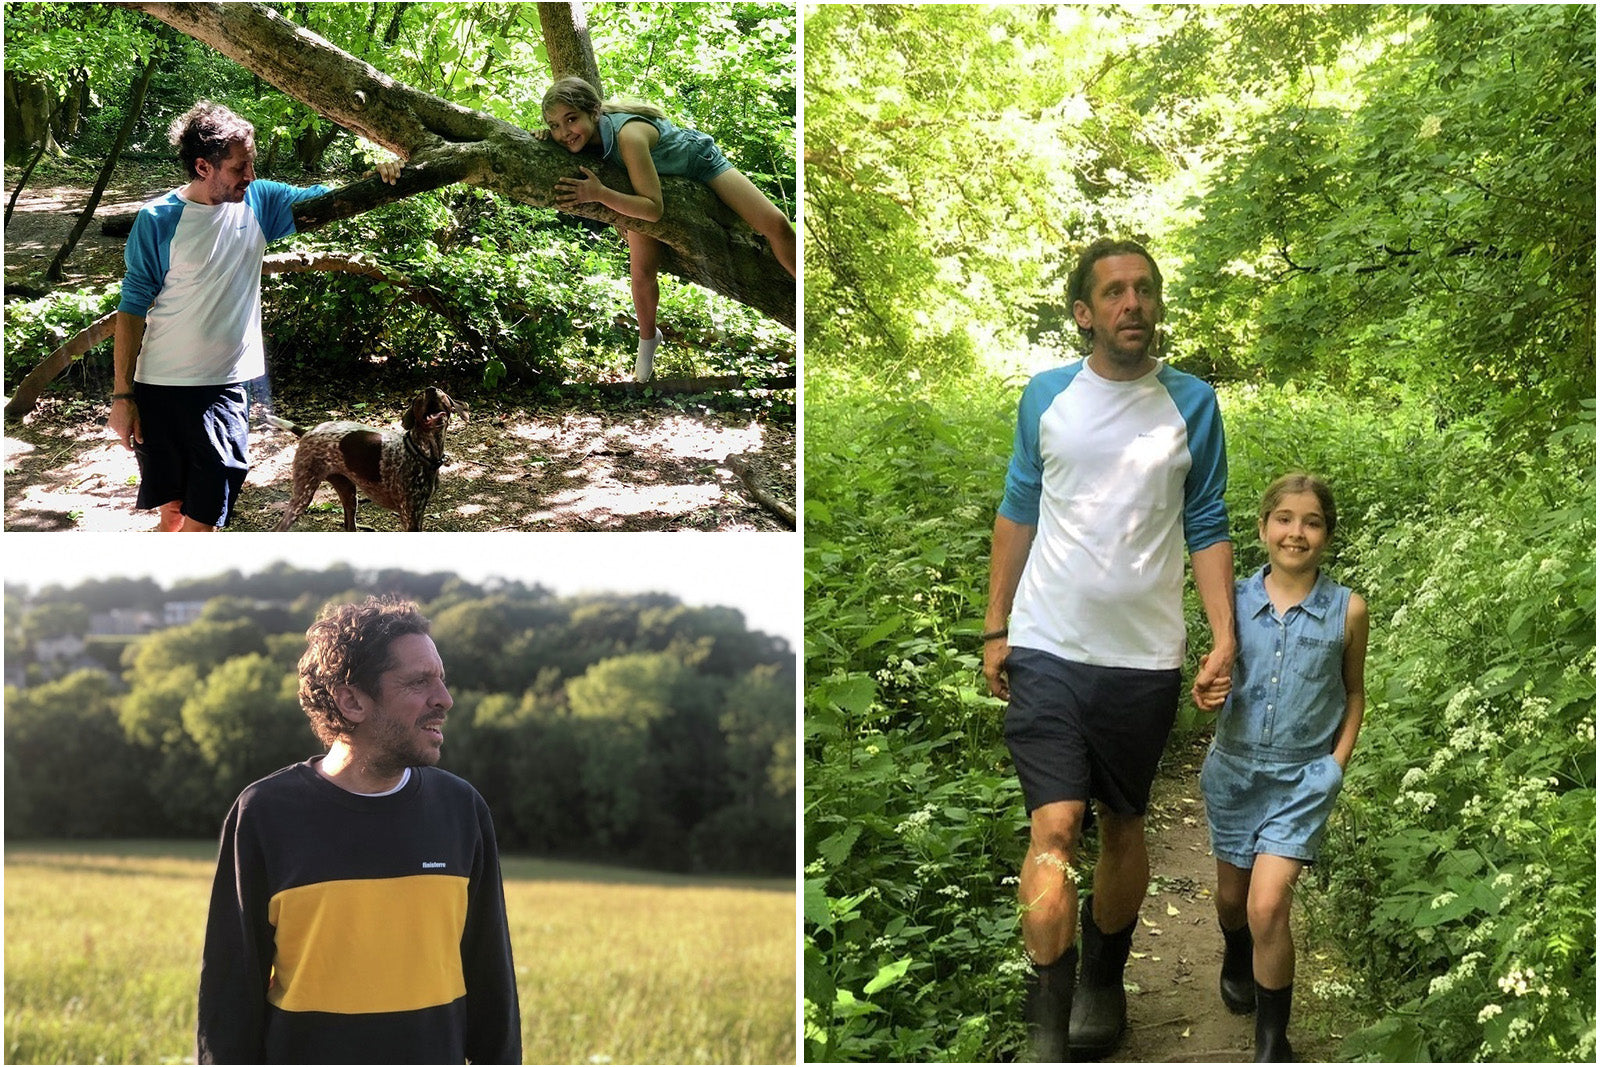 Dan Burgess spending walking with his daughter in the woods behind his home